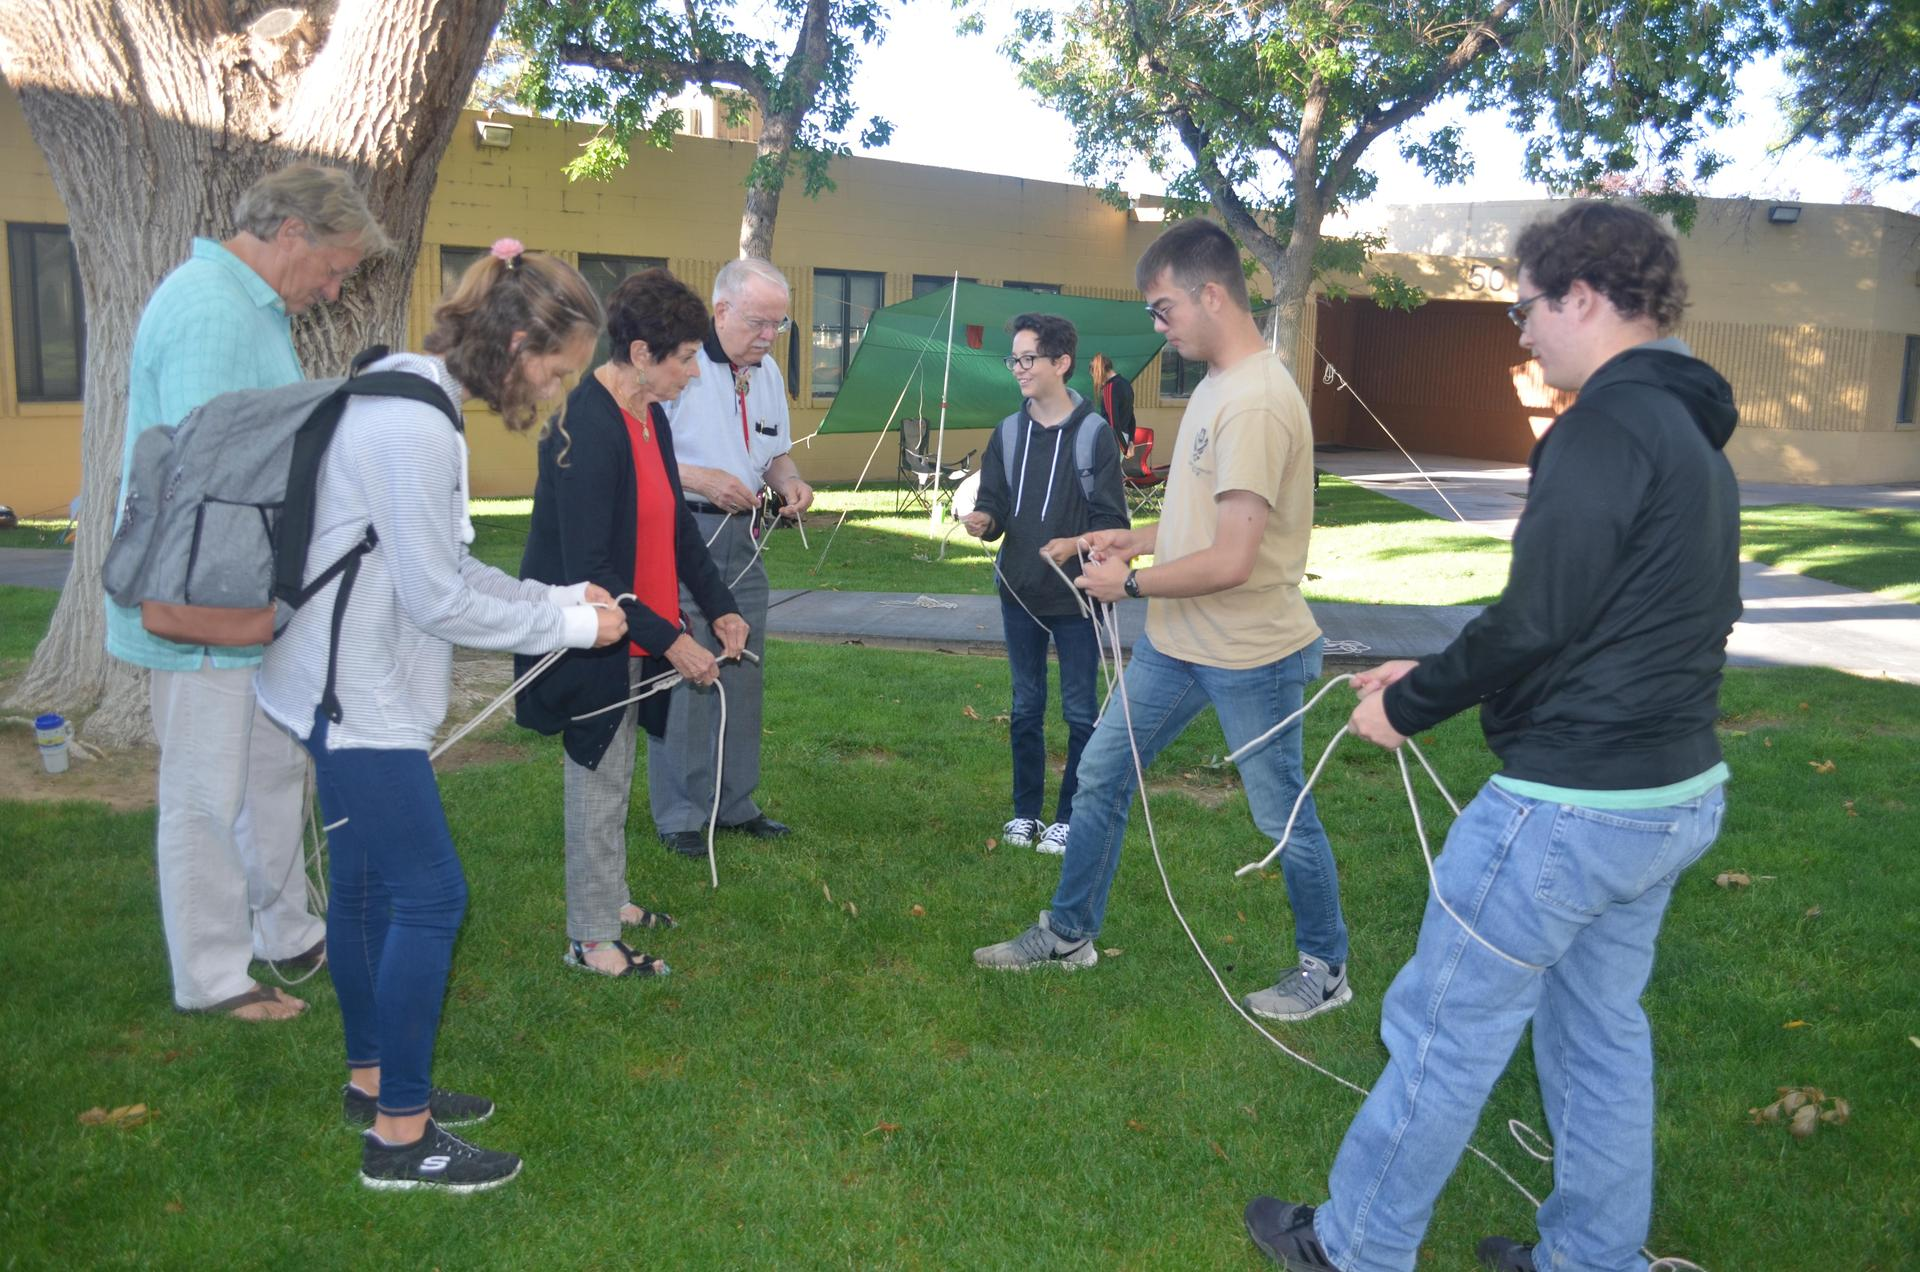 Students and parents work on Outdoor Leadership Program project